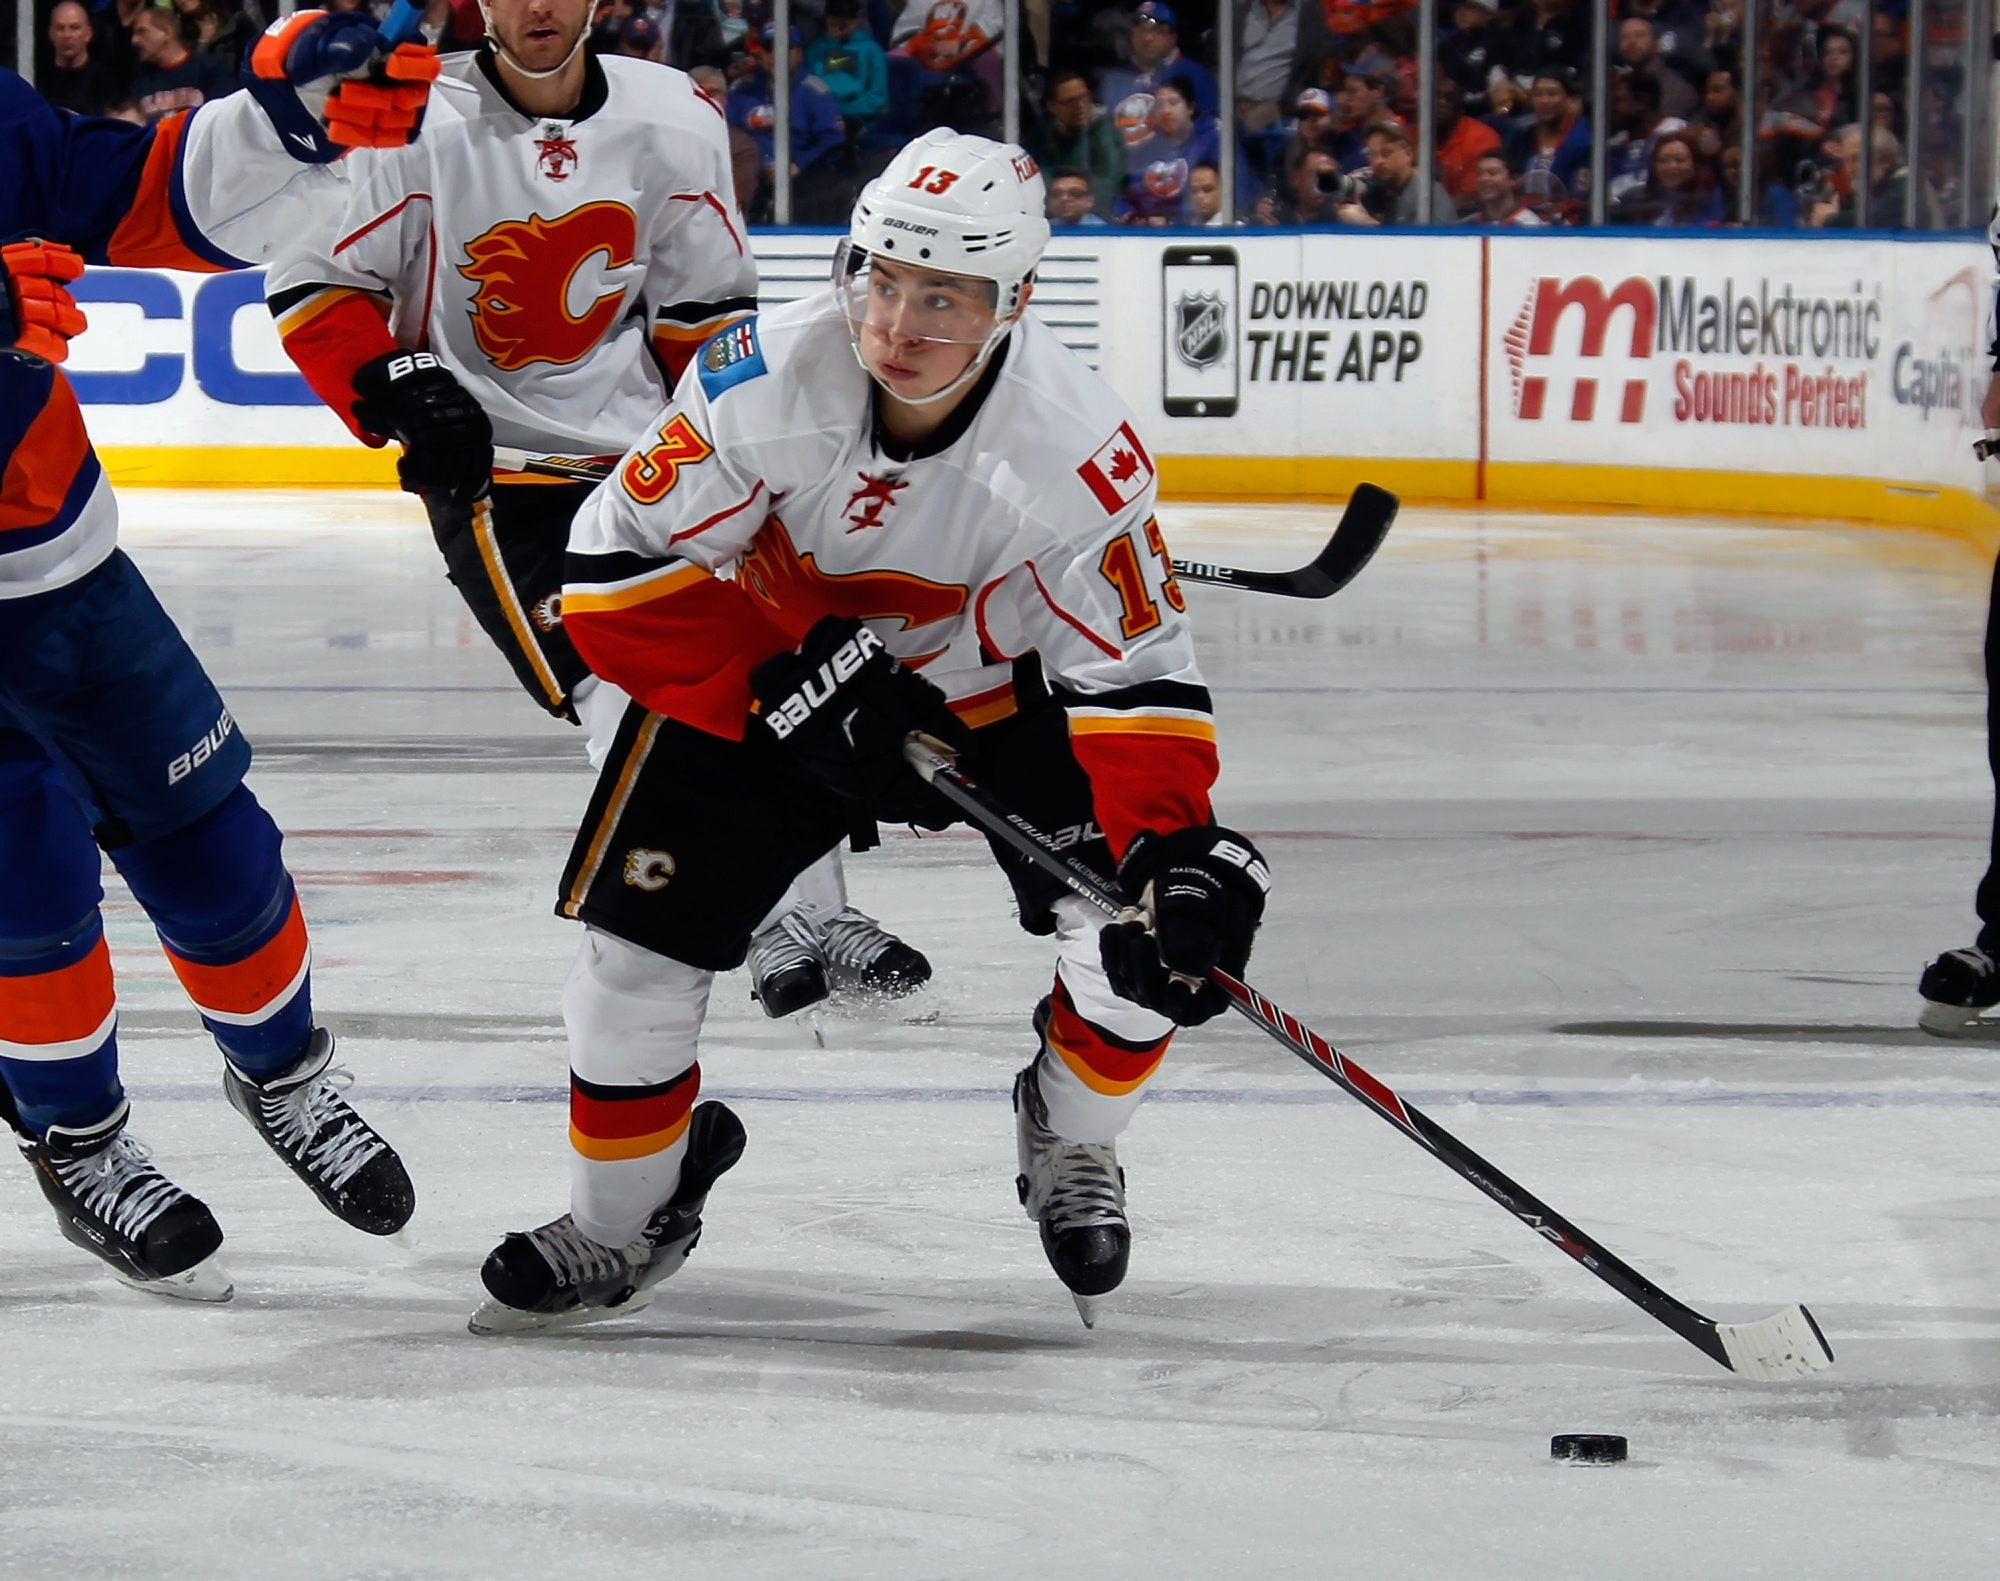 Forward Johnny Gaudreau of the Calgary Flames won the Hobey Baker Award as the best college hockey player in 2014.